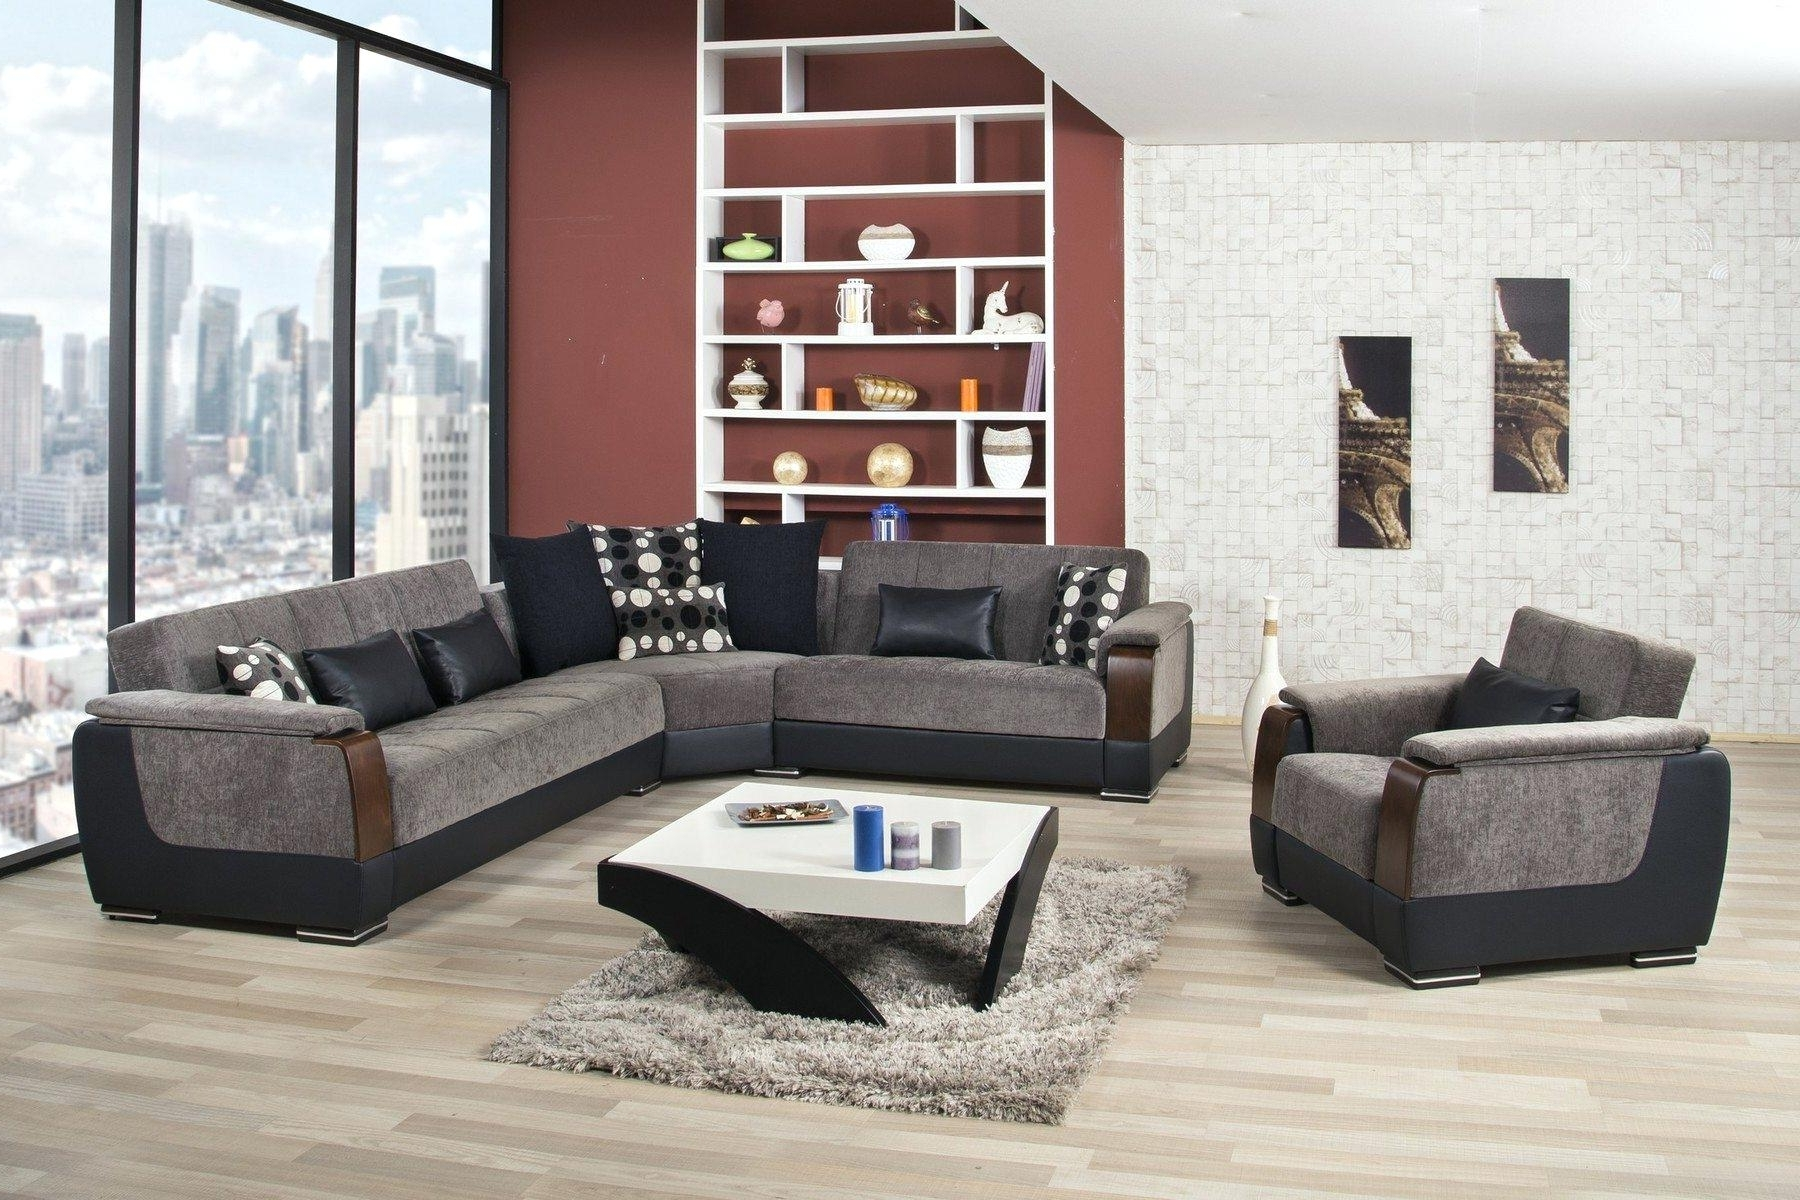 2017 Becker Furniture World Mn Locations Magnolia Farms In Dining Home In St Cloud Mn Sectional Sofas (View 12 of 15)